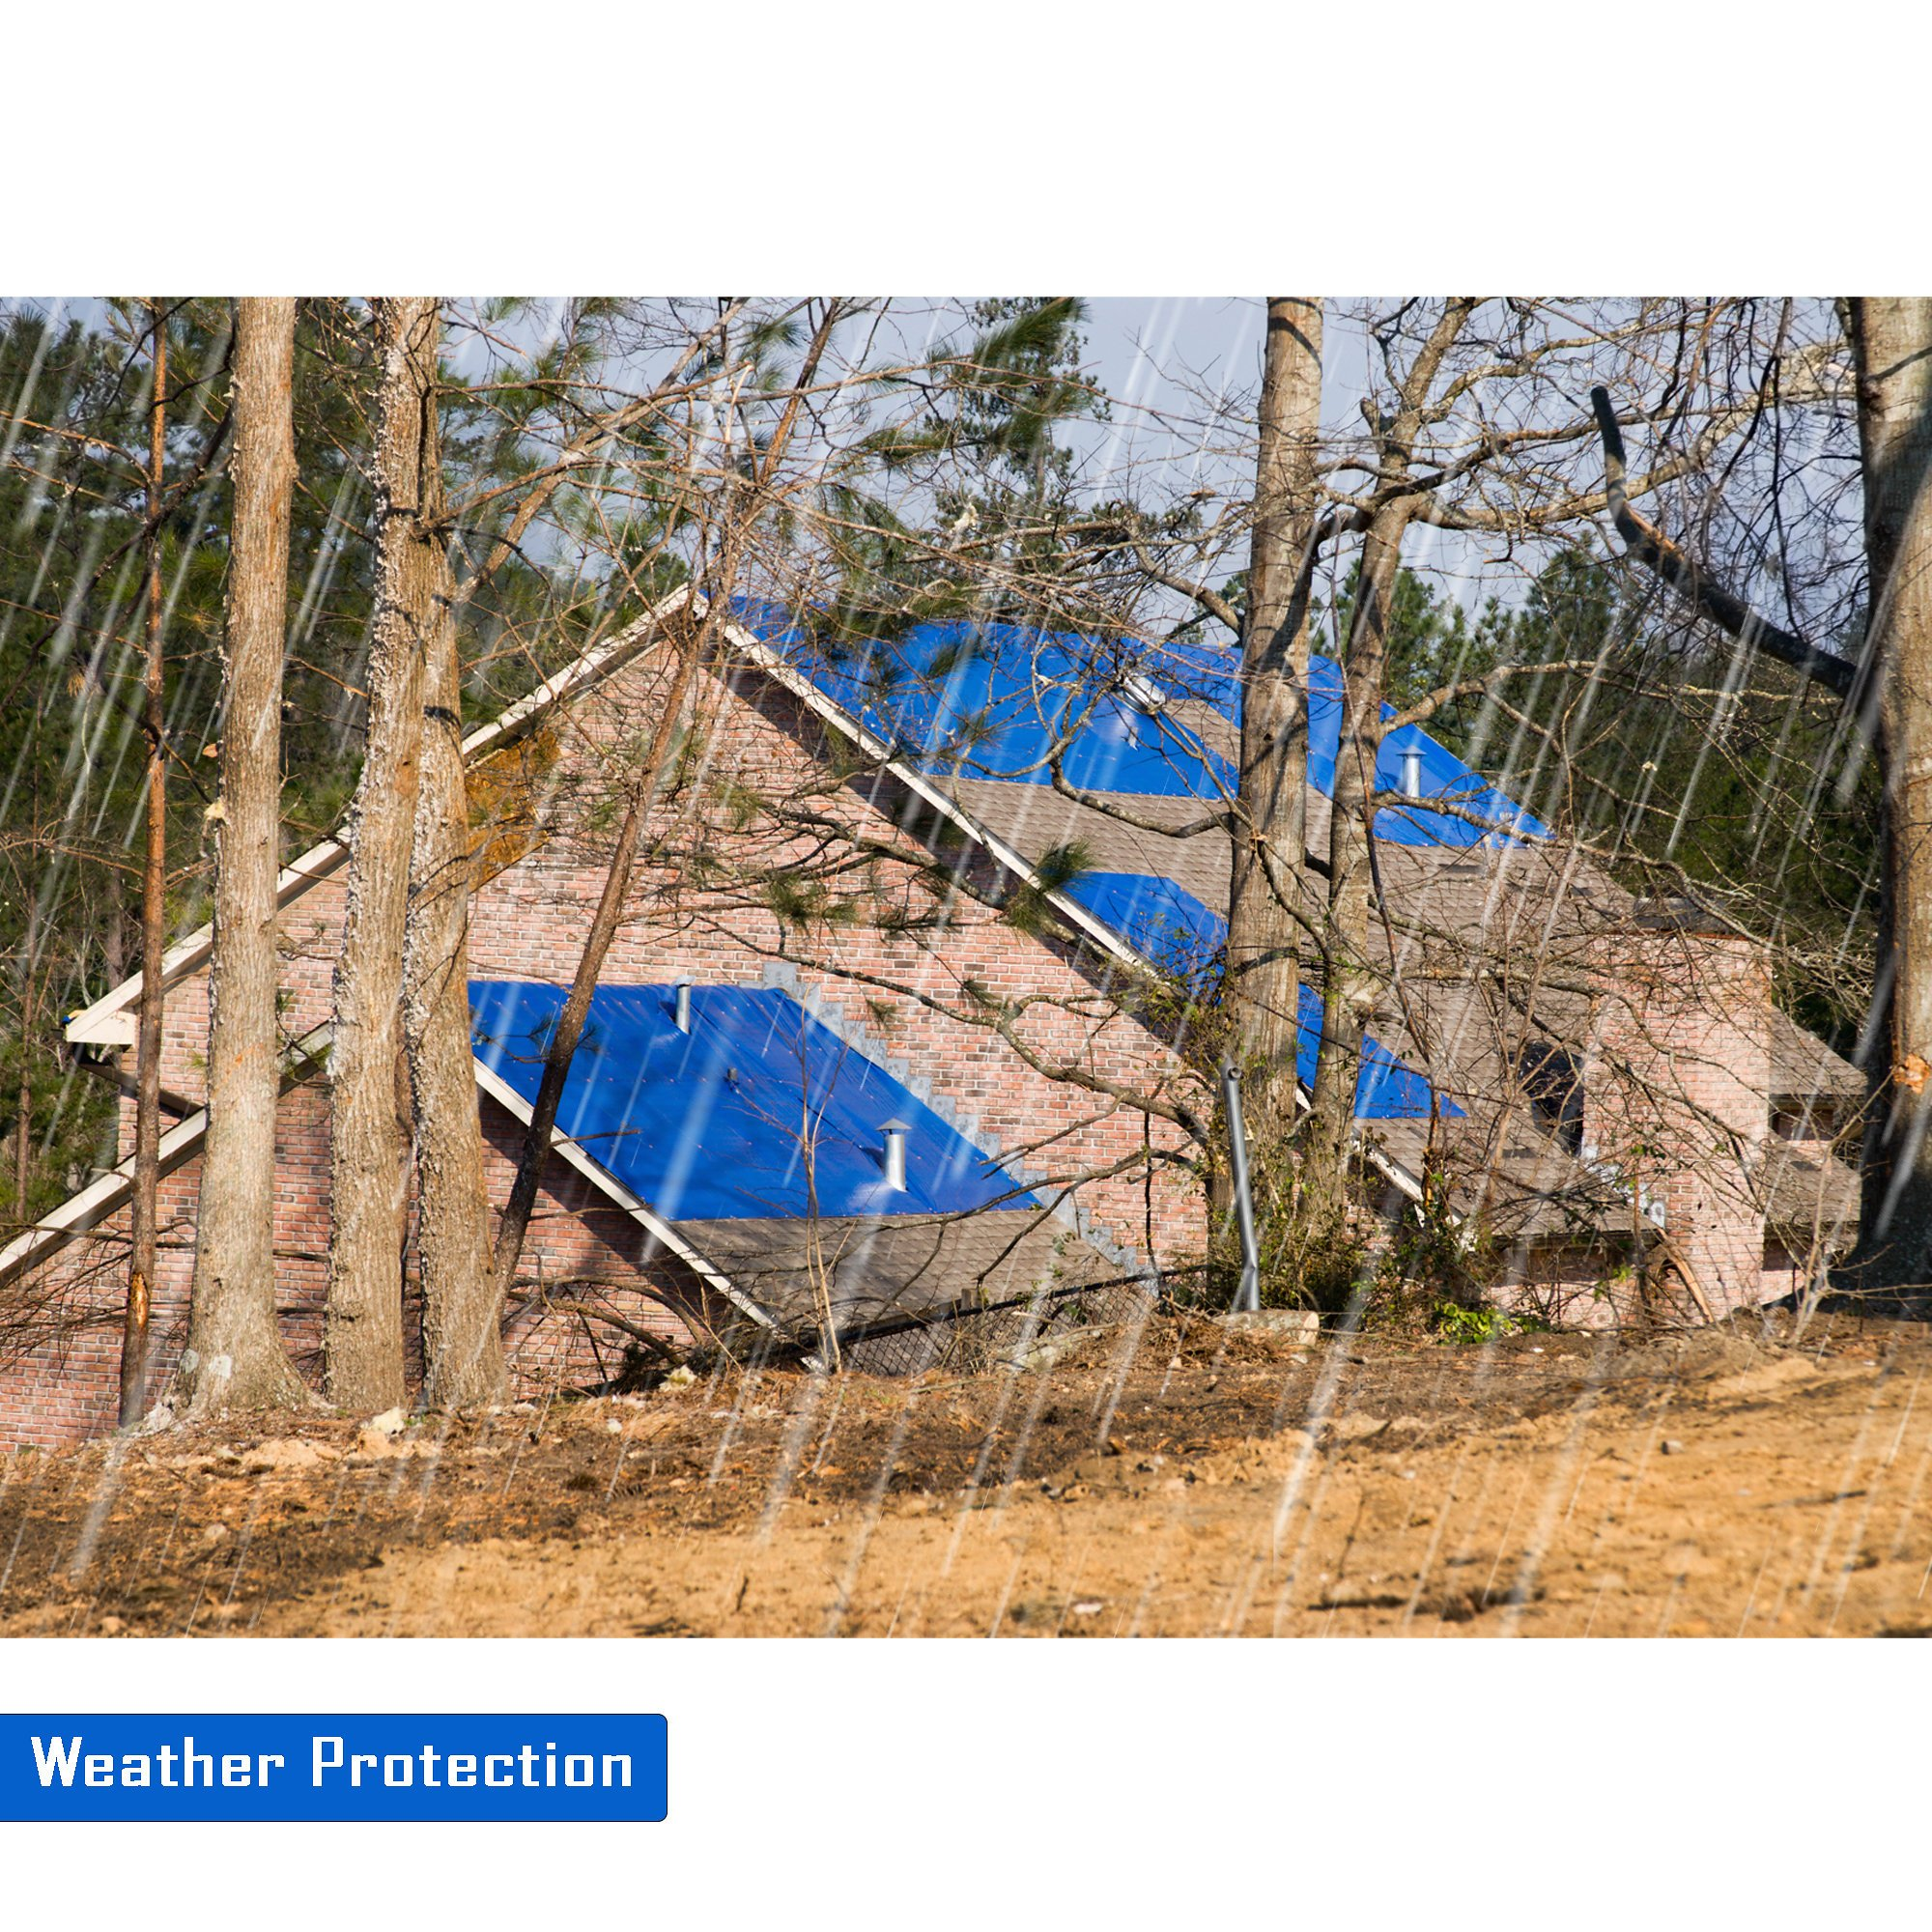 20'x25' Blue Multi-purpose 6ml Waterproof Poly Tarp Cover with Tent Shelter Camping Tarpaulin By Prime Tarps by TARPATOP (Image #4)